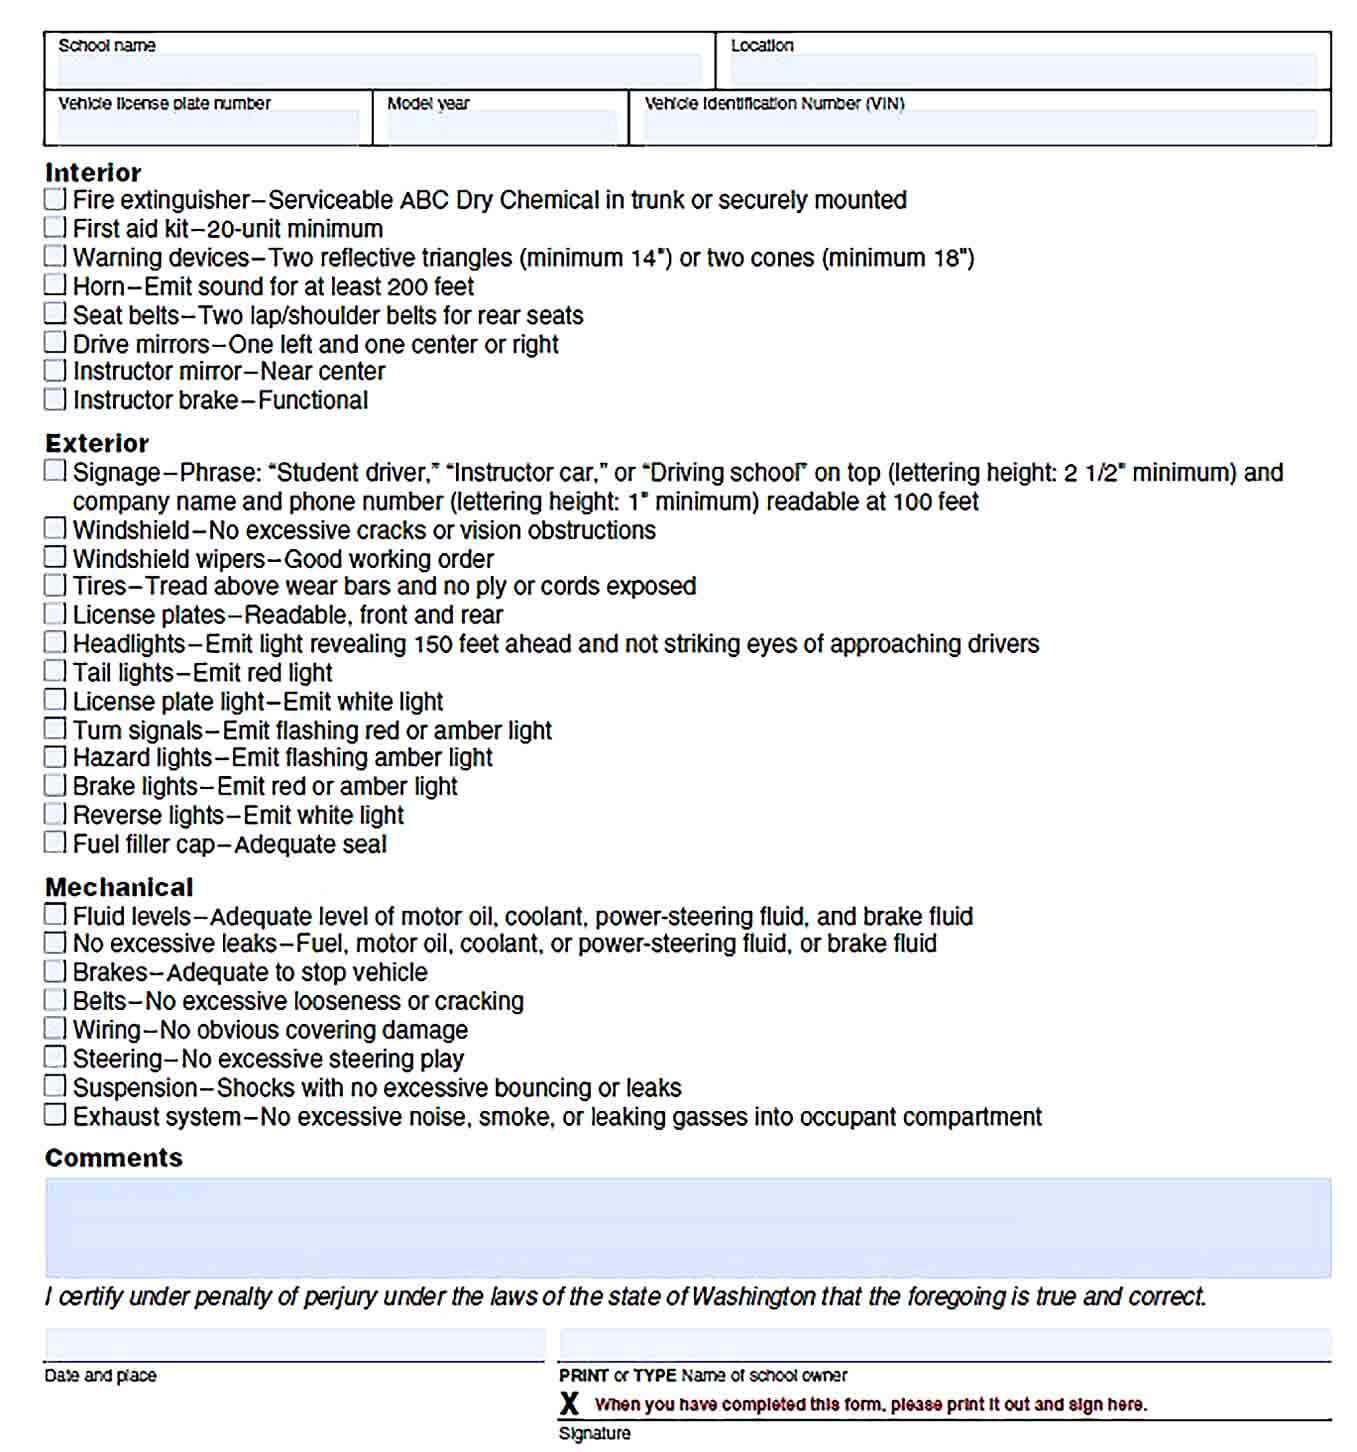 Sample Vehicle Inspection Report Template